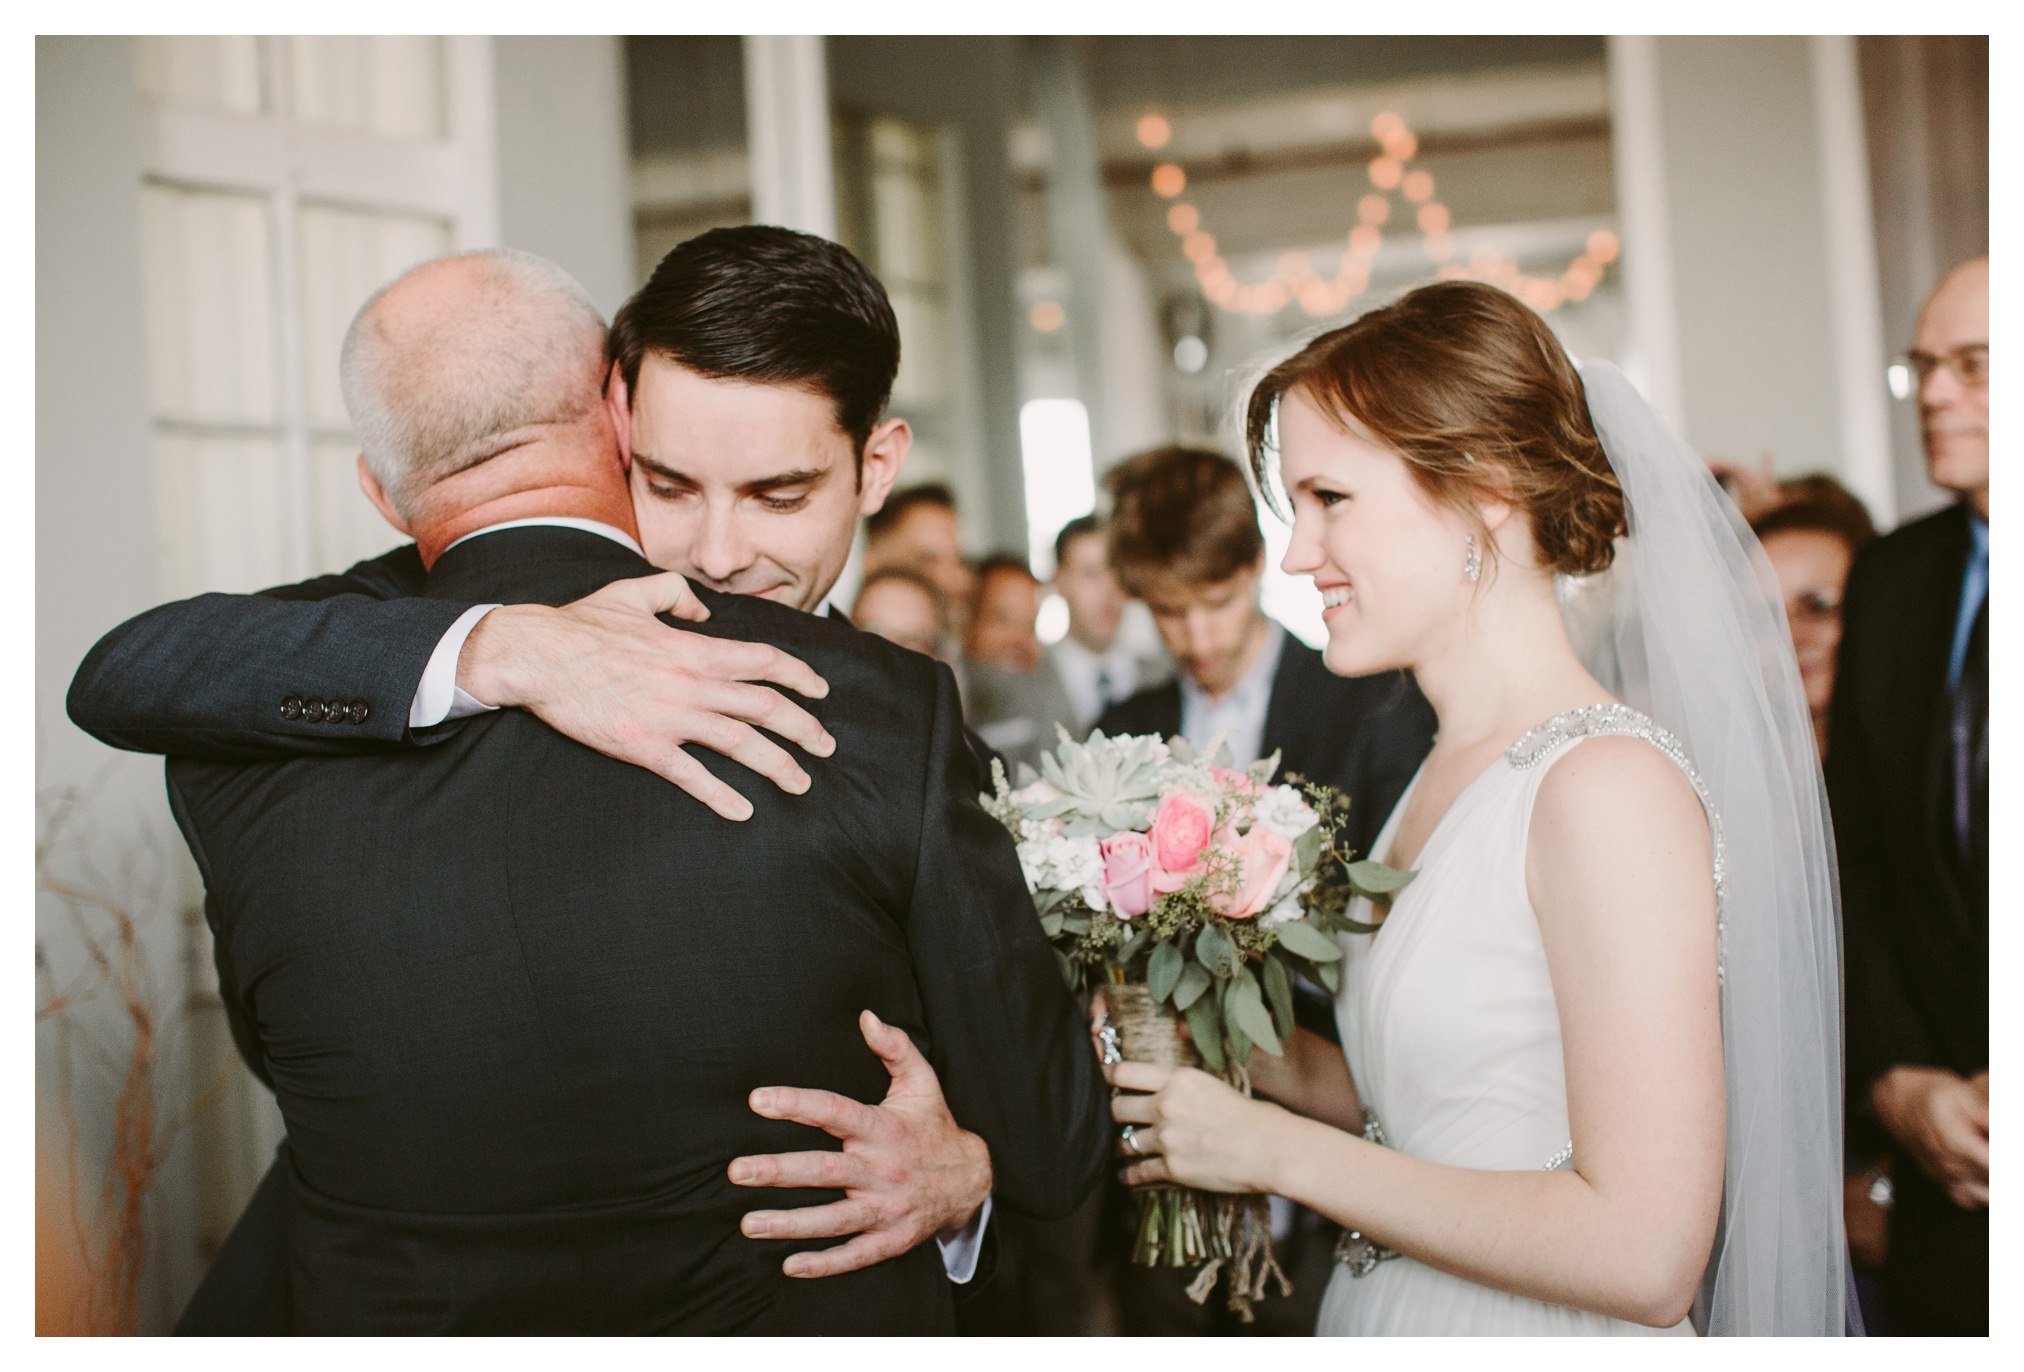 Metropolitan Building Wedding • Sidney Morgan